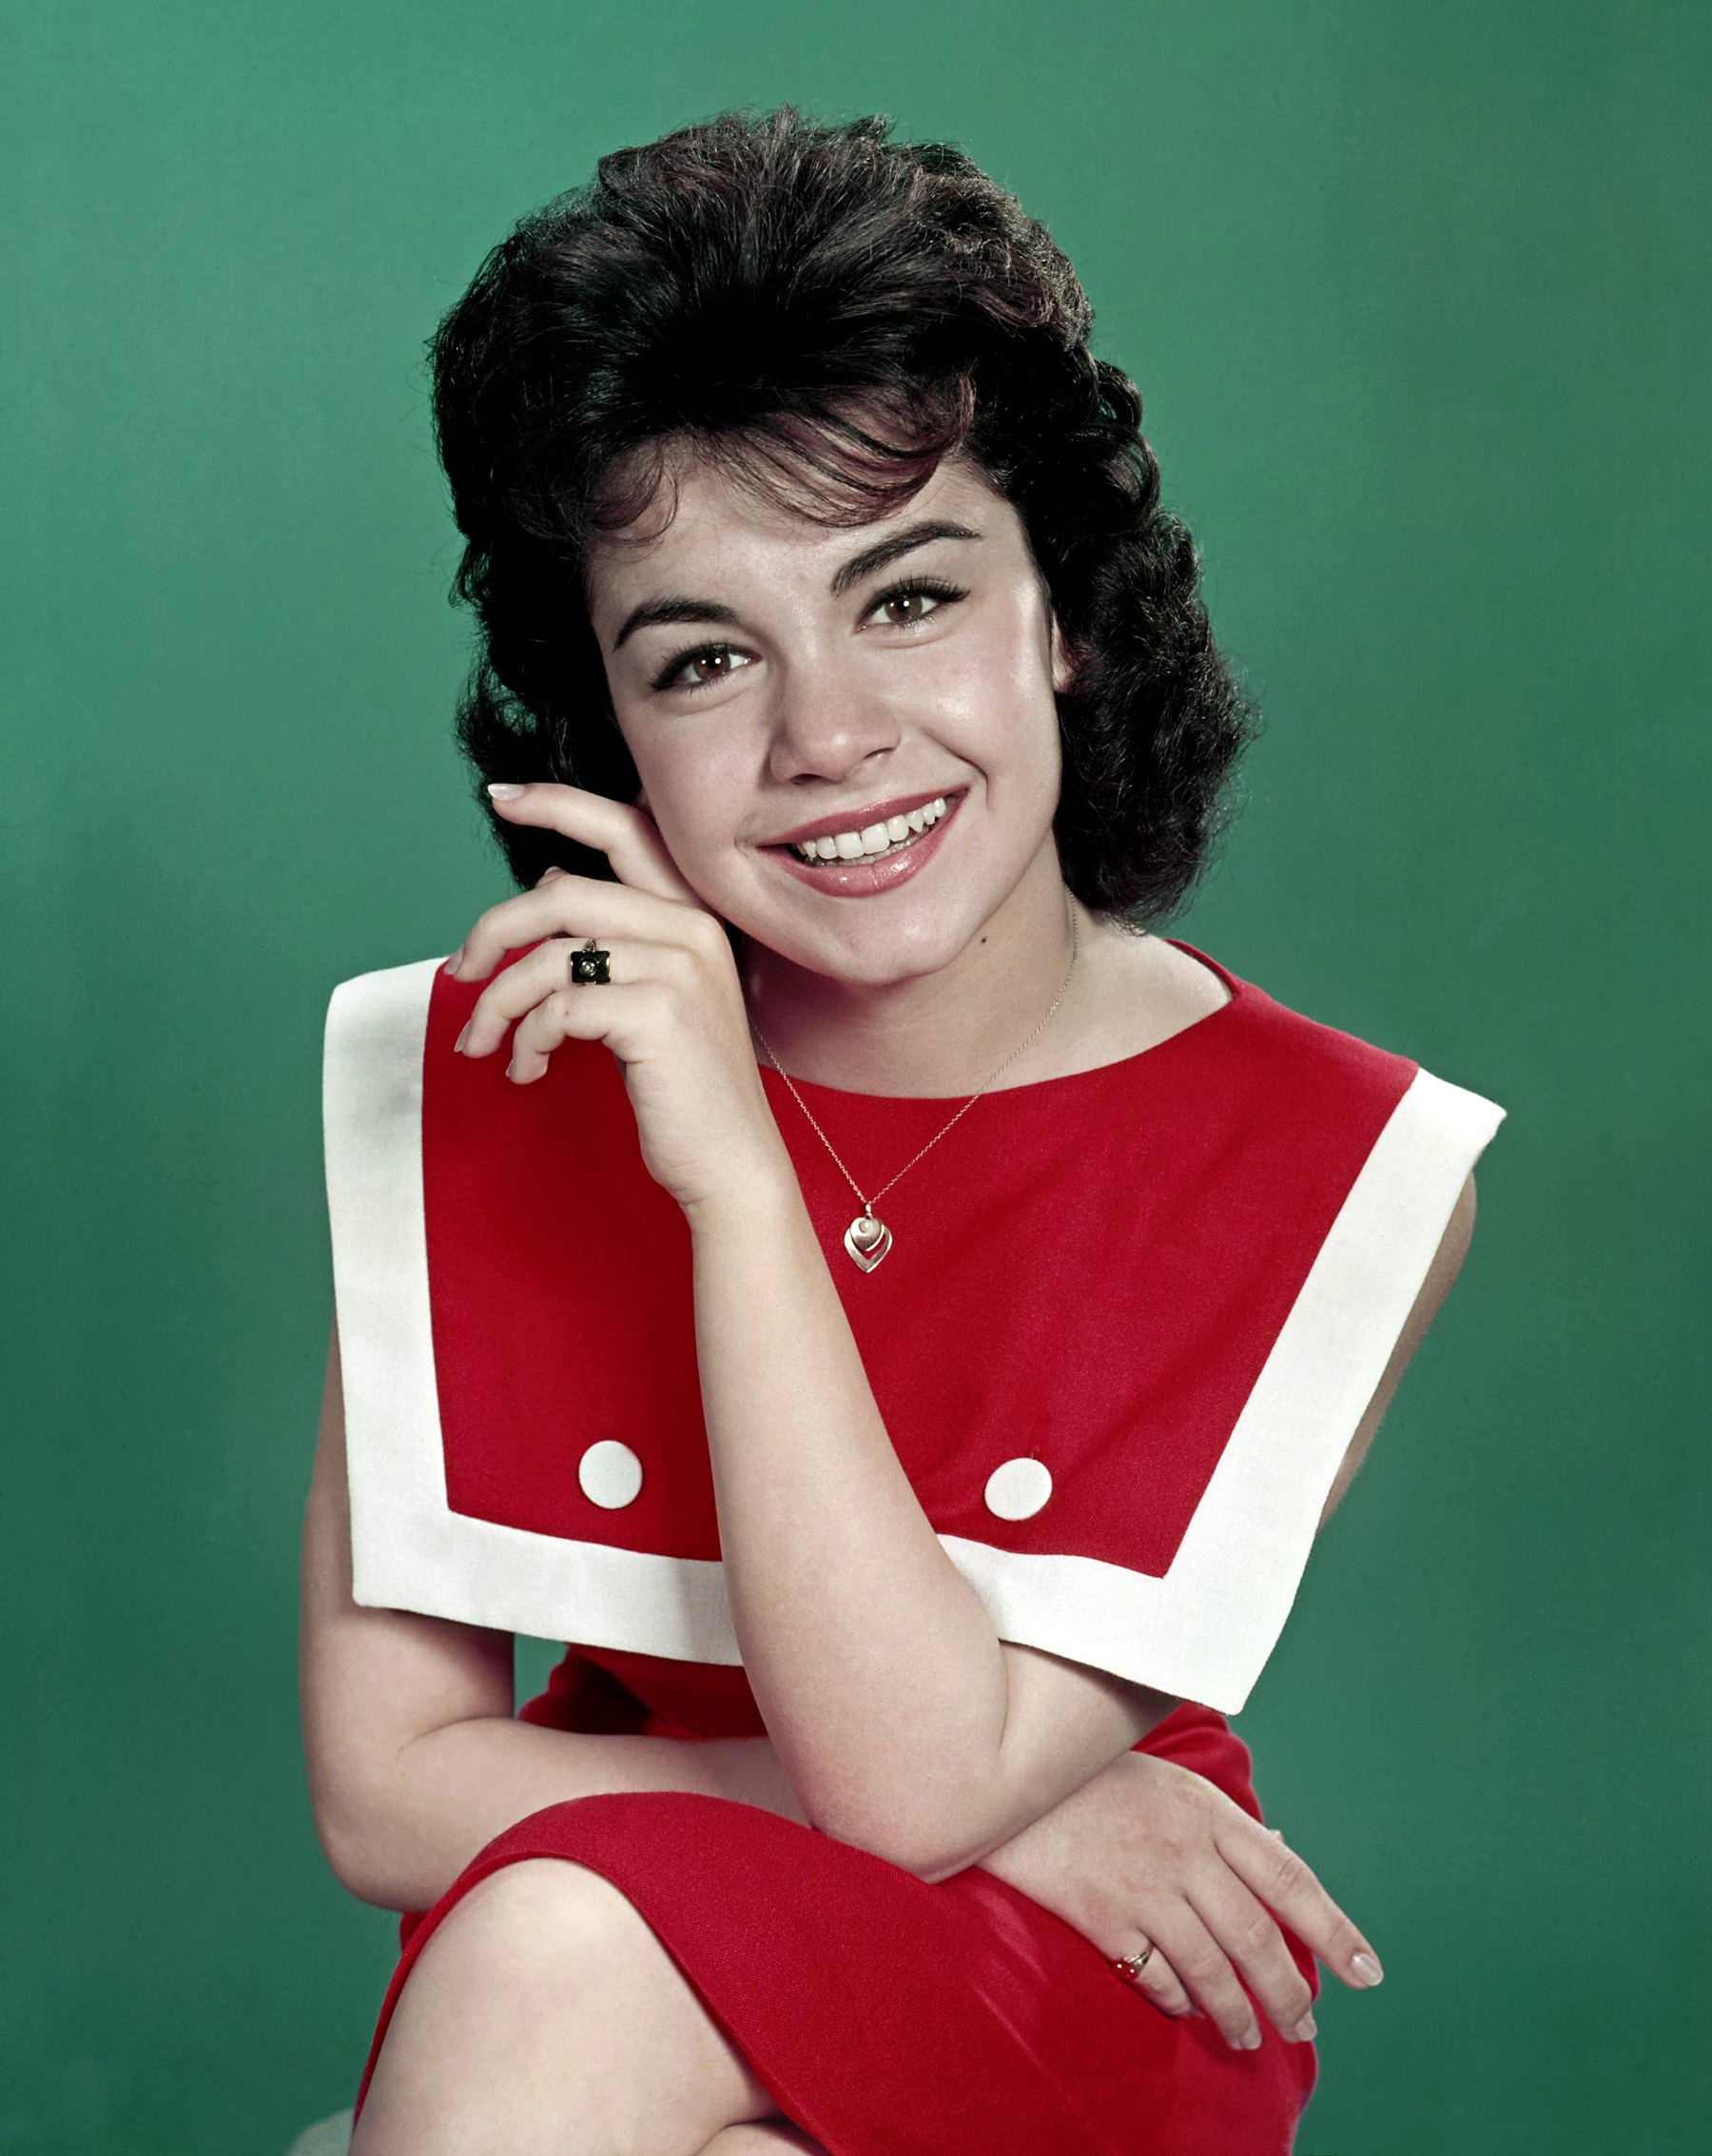 Annette funicello photo gallery # Best Battery Razors For Men - How To Recondition A